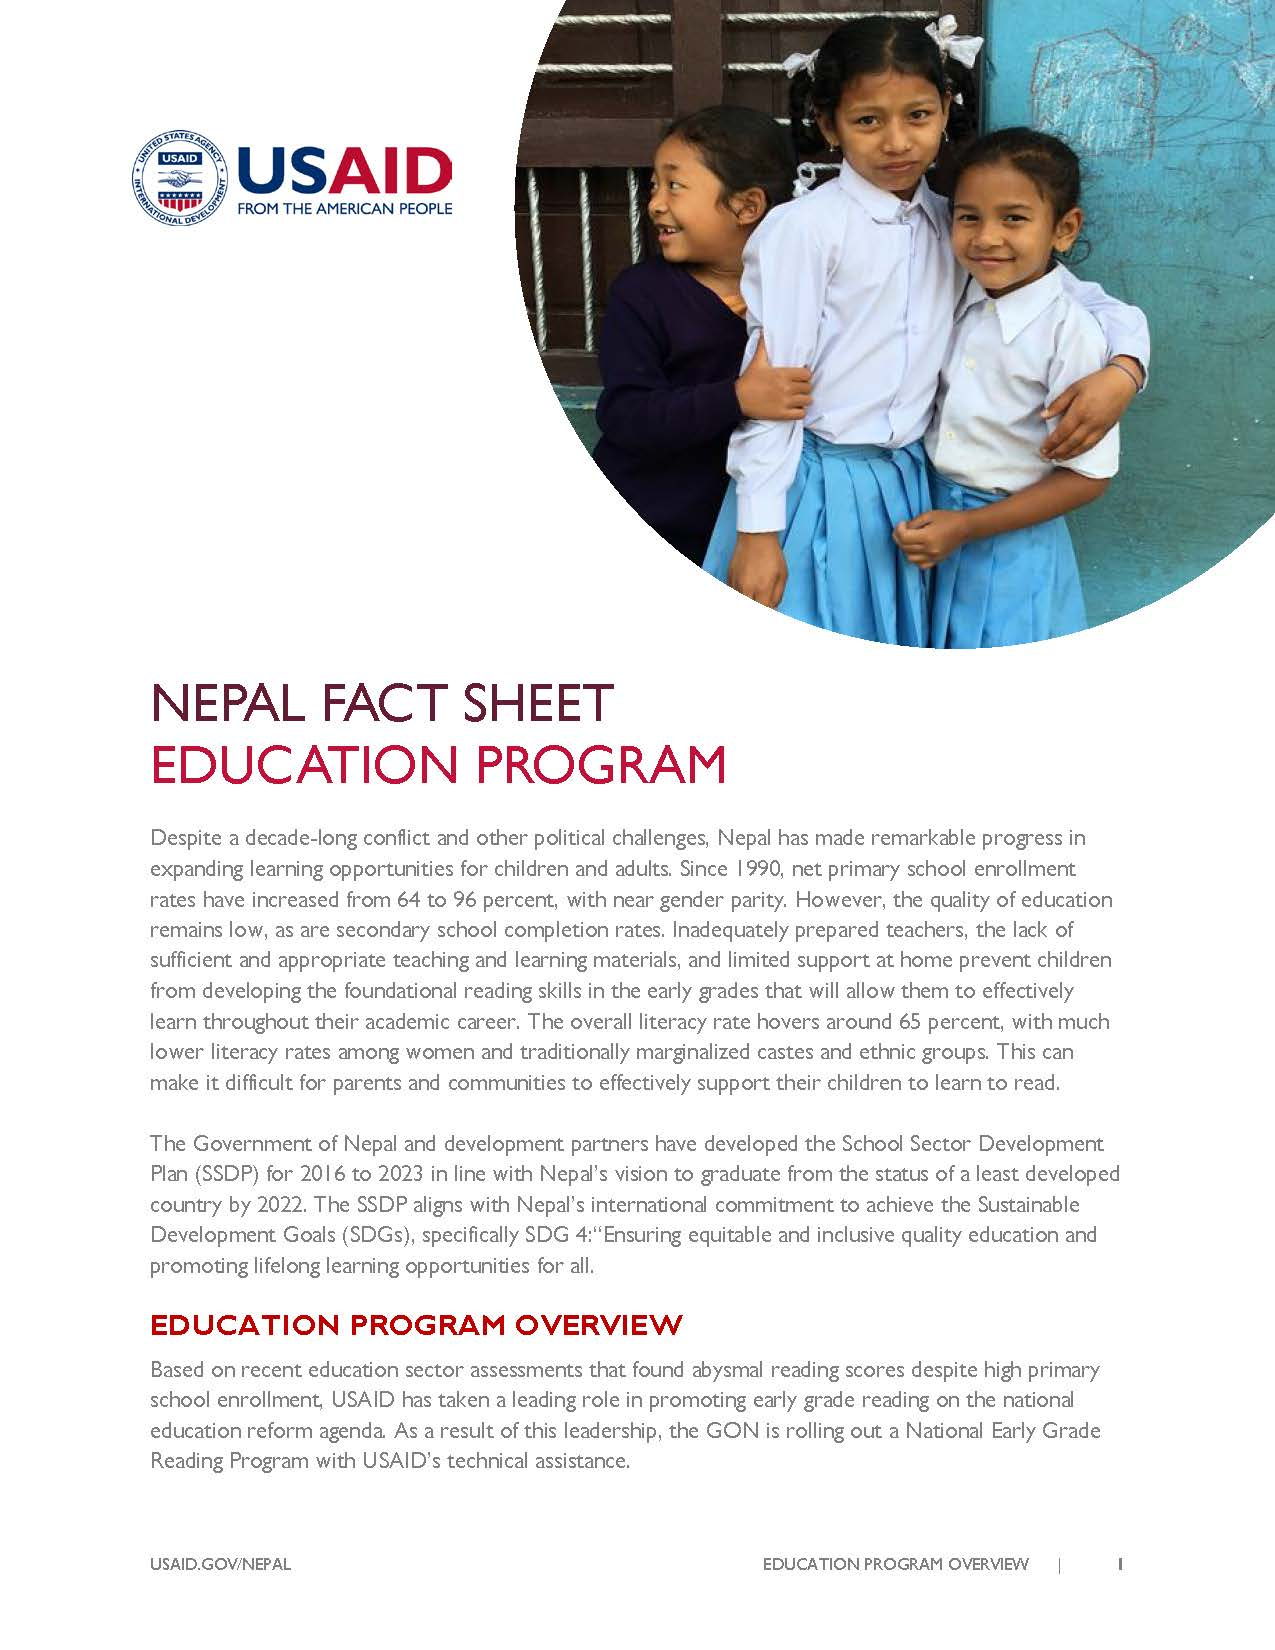 Fact Sheet: EDUCATION PROGRAM